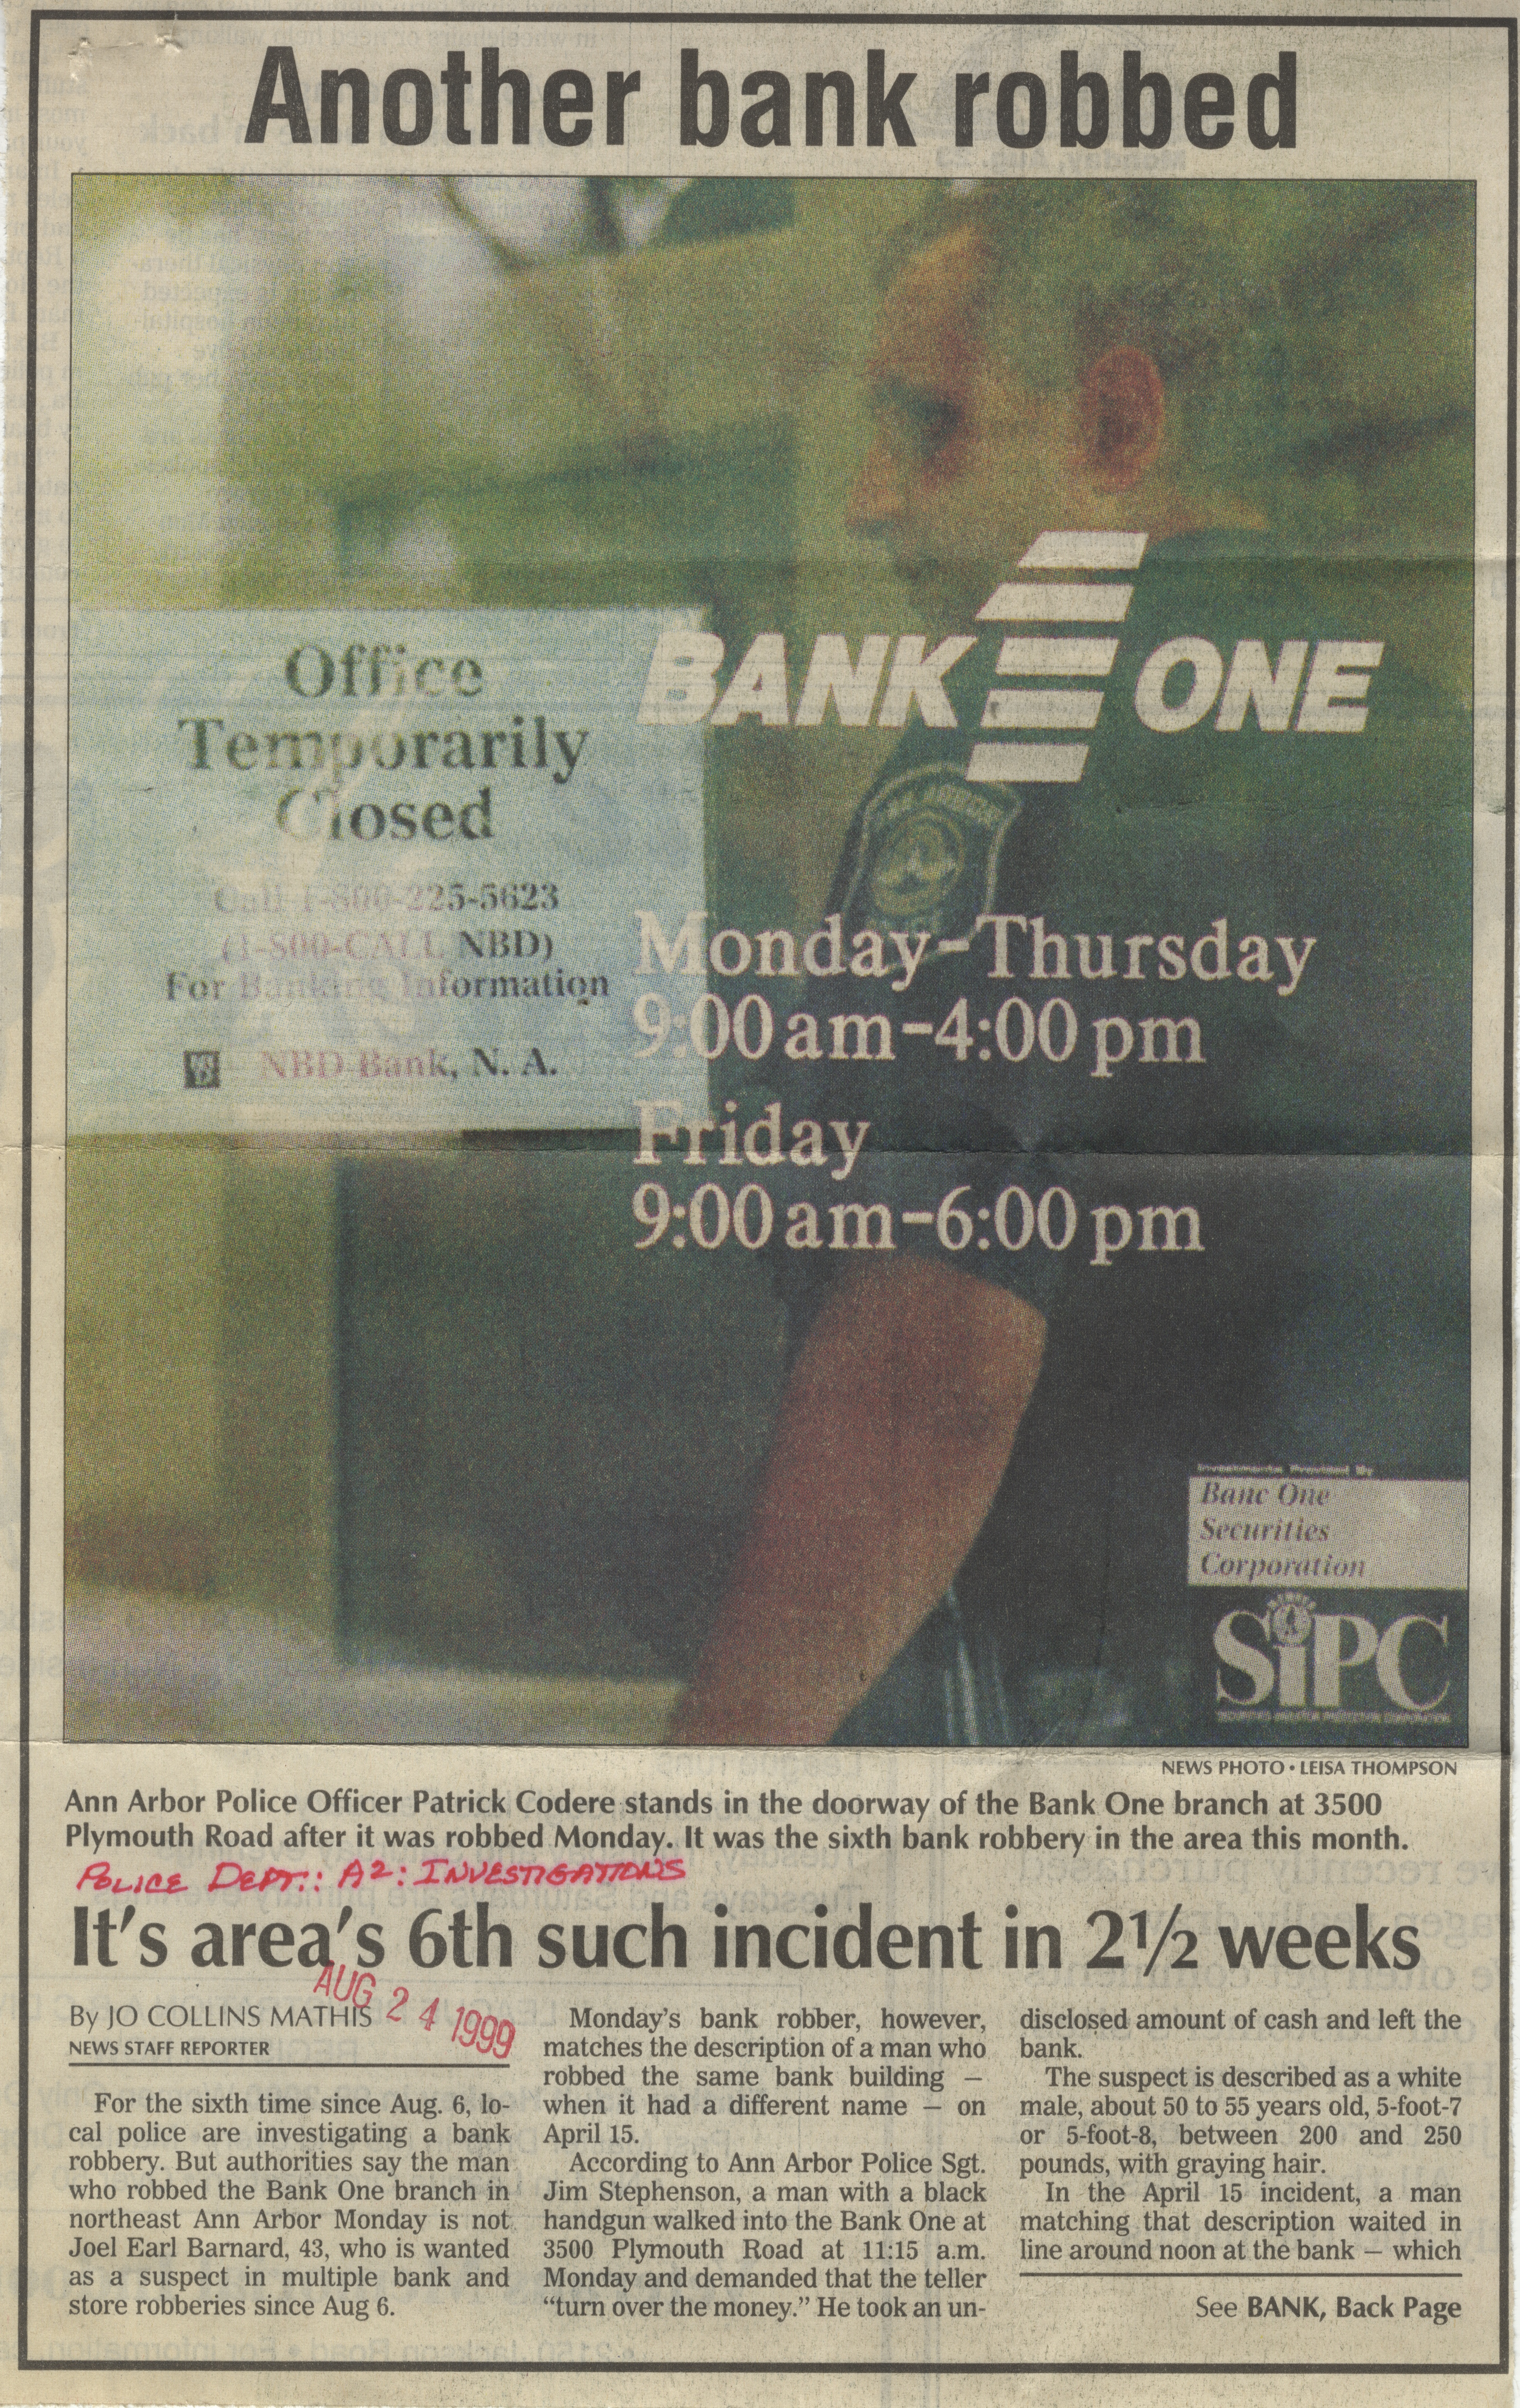 Another Bank Robbed - It's Area's 6th Such Incident In 2 1/2 Weeks image